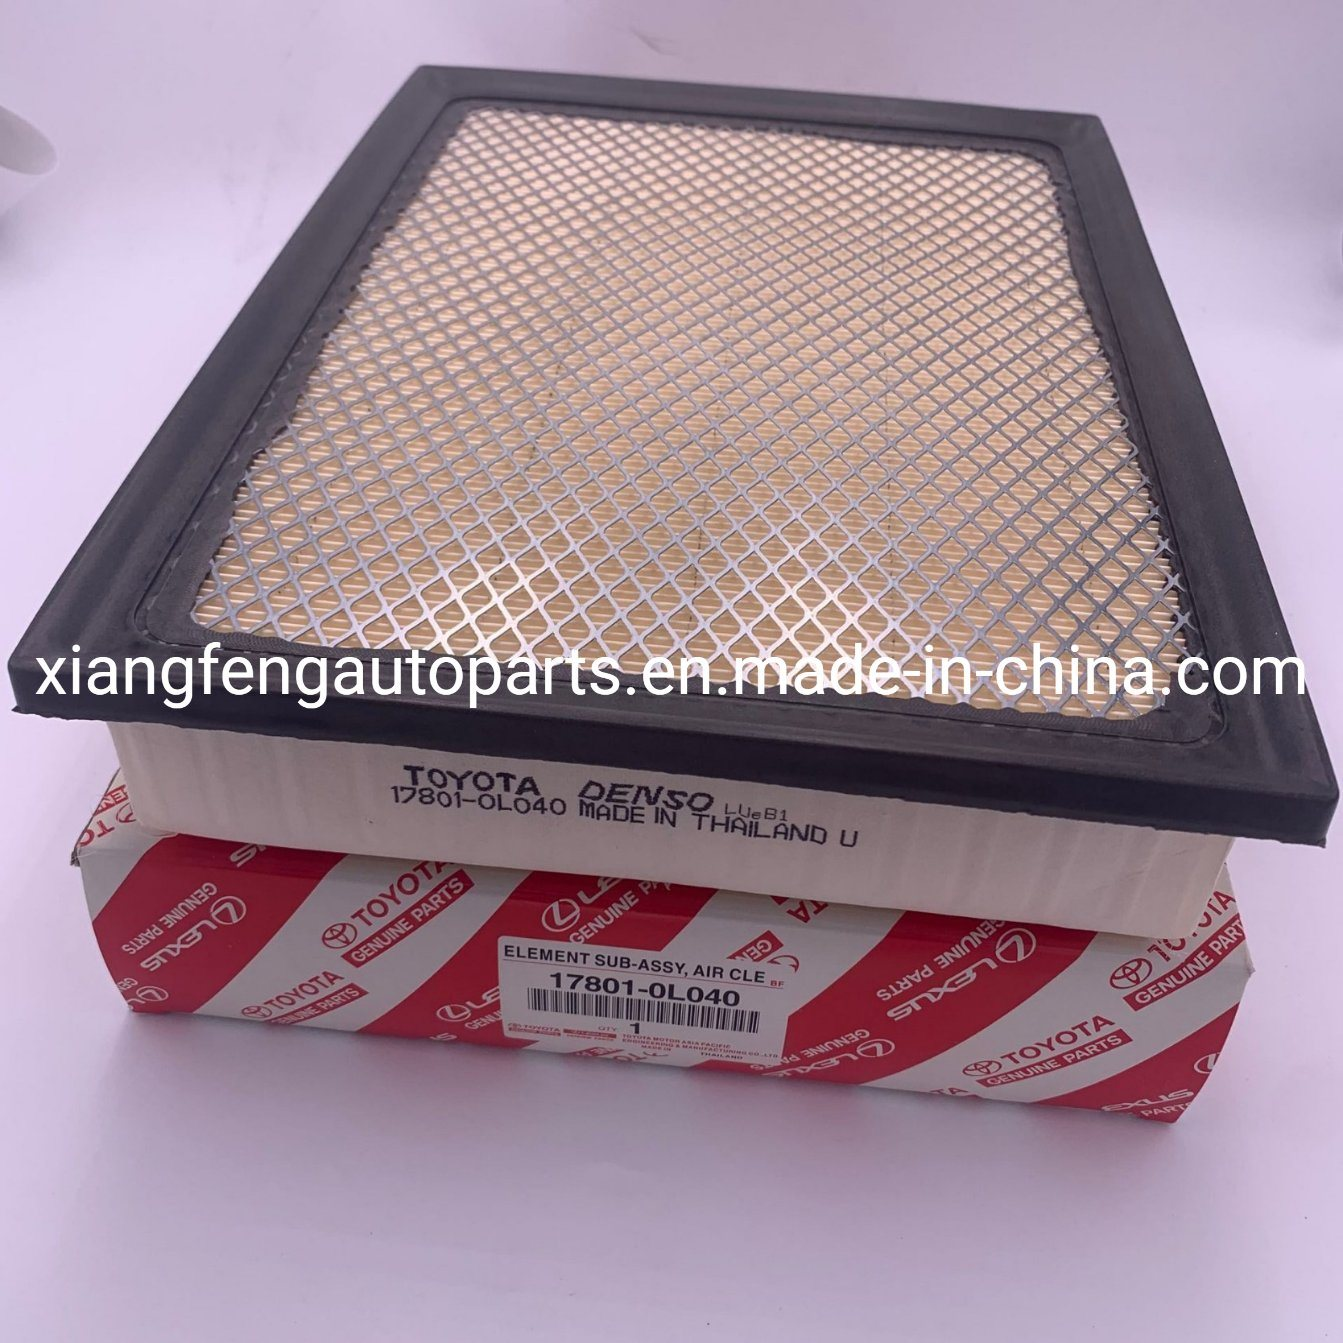 1gd 2gd Wholesale Quality Air Filter 17801-0L040 for Toyota Hilux Gun122 pictures & photos